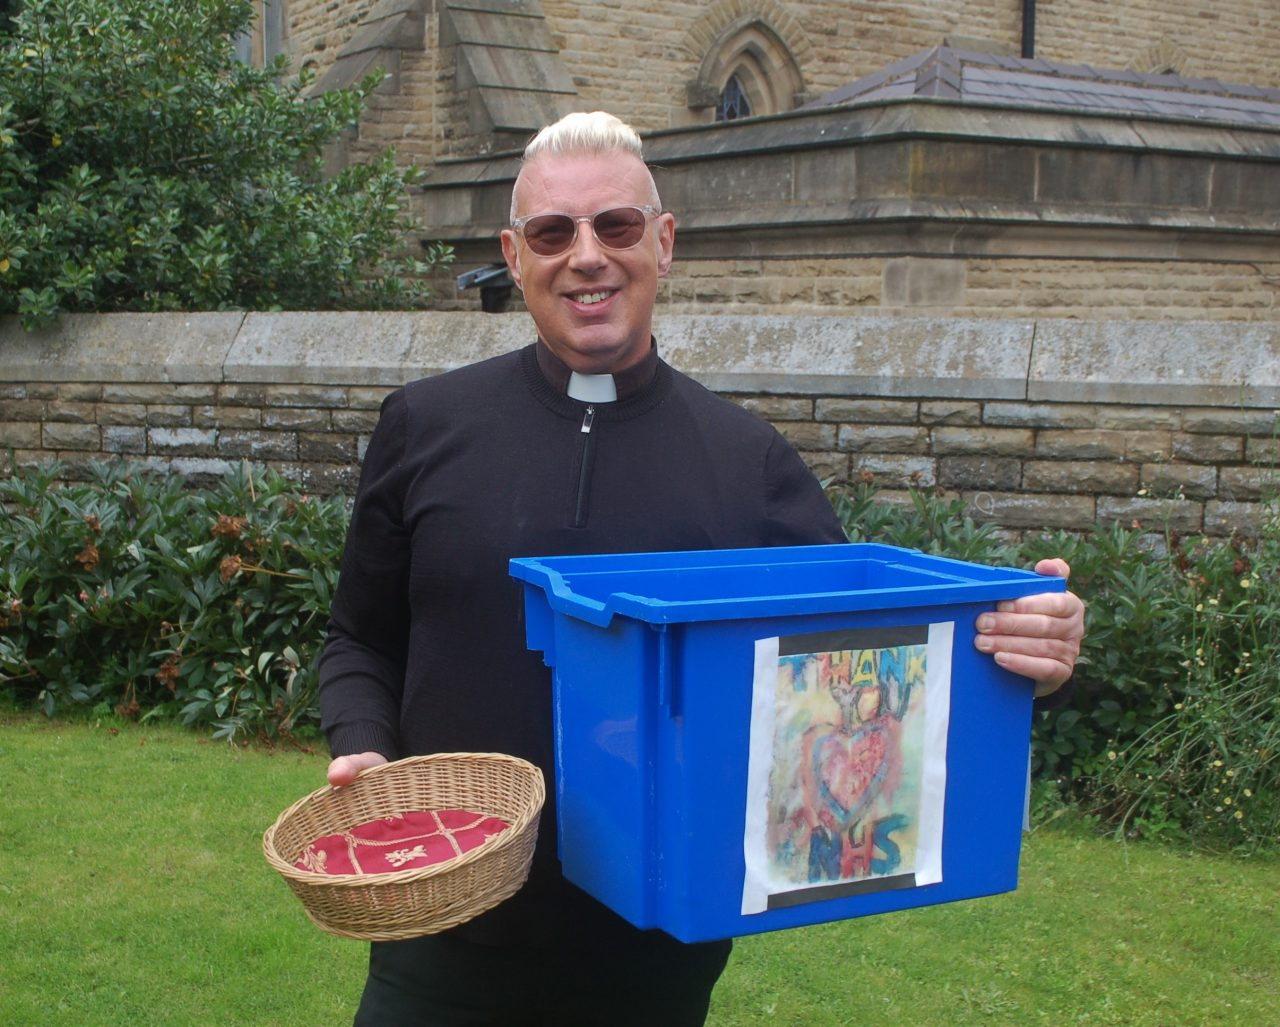 Father John Wiseman taking donations for the NHS